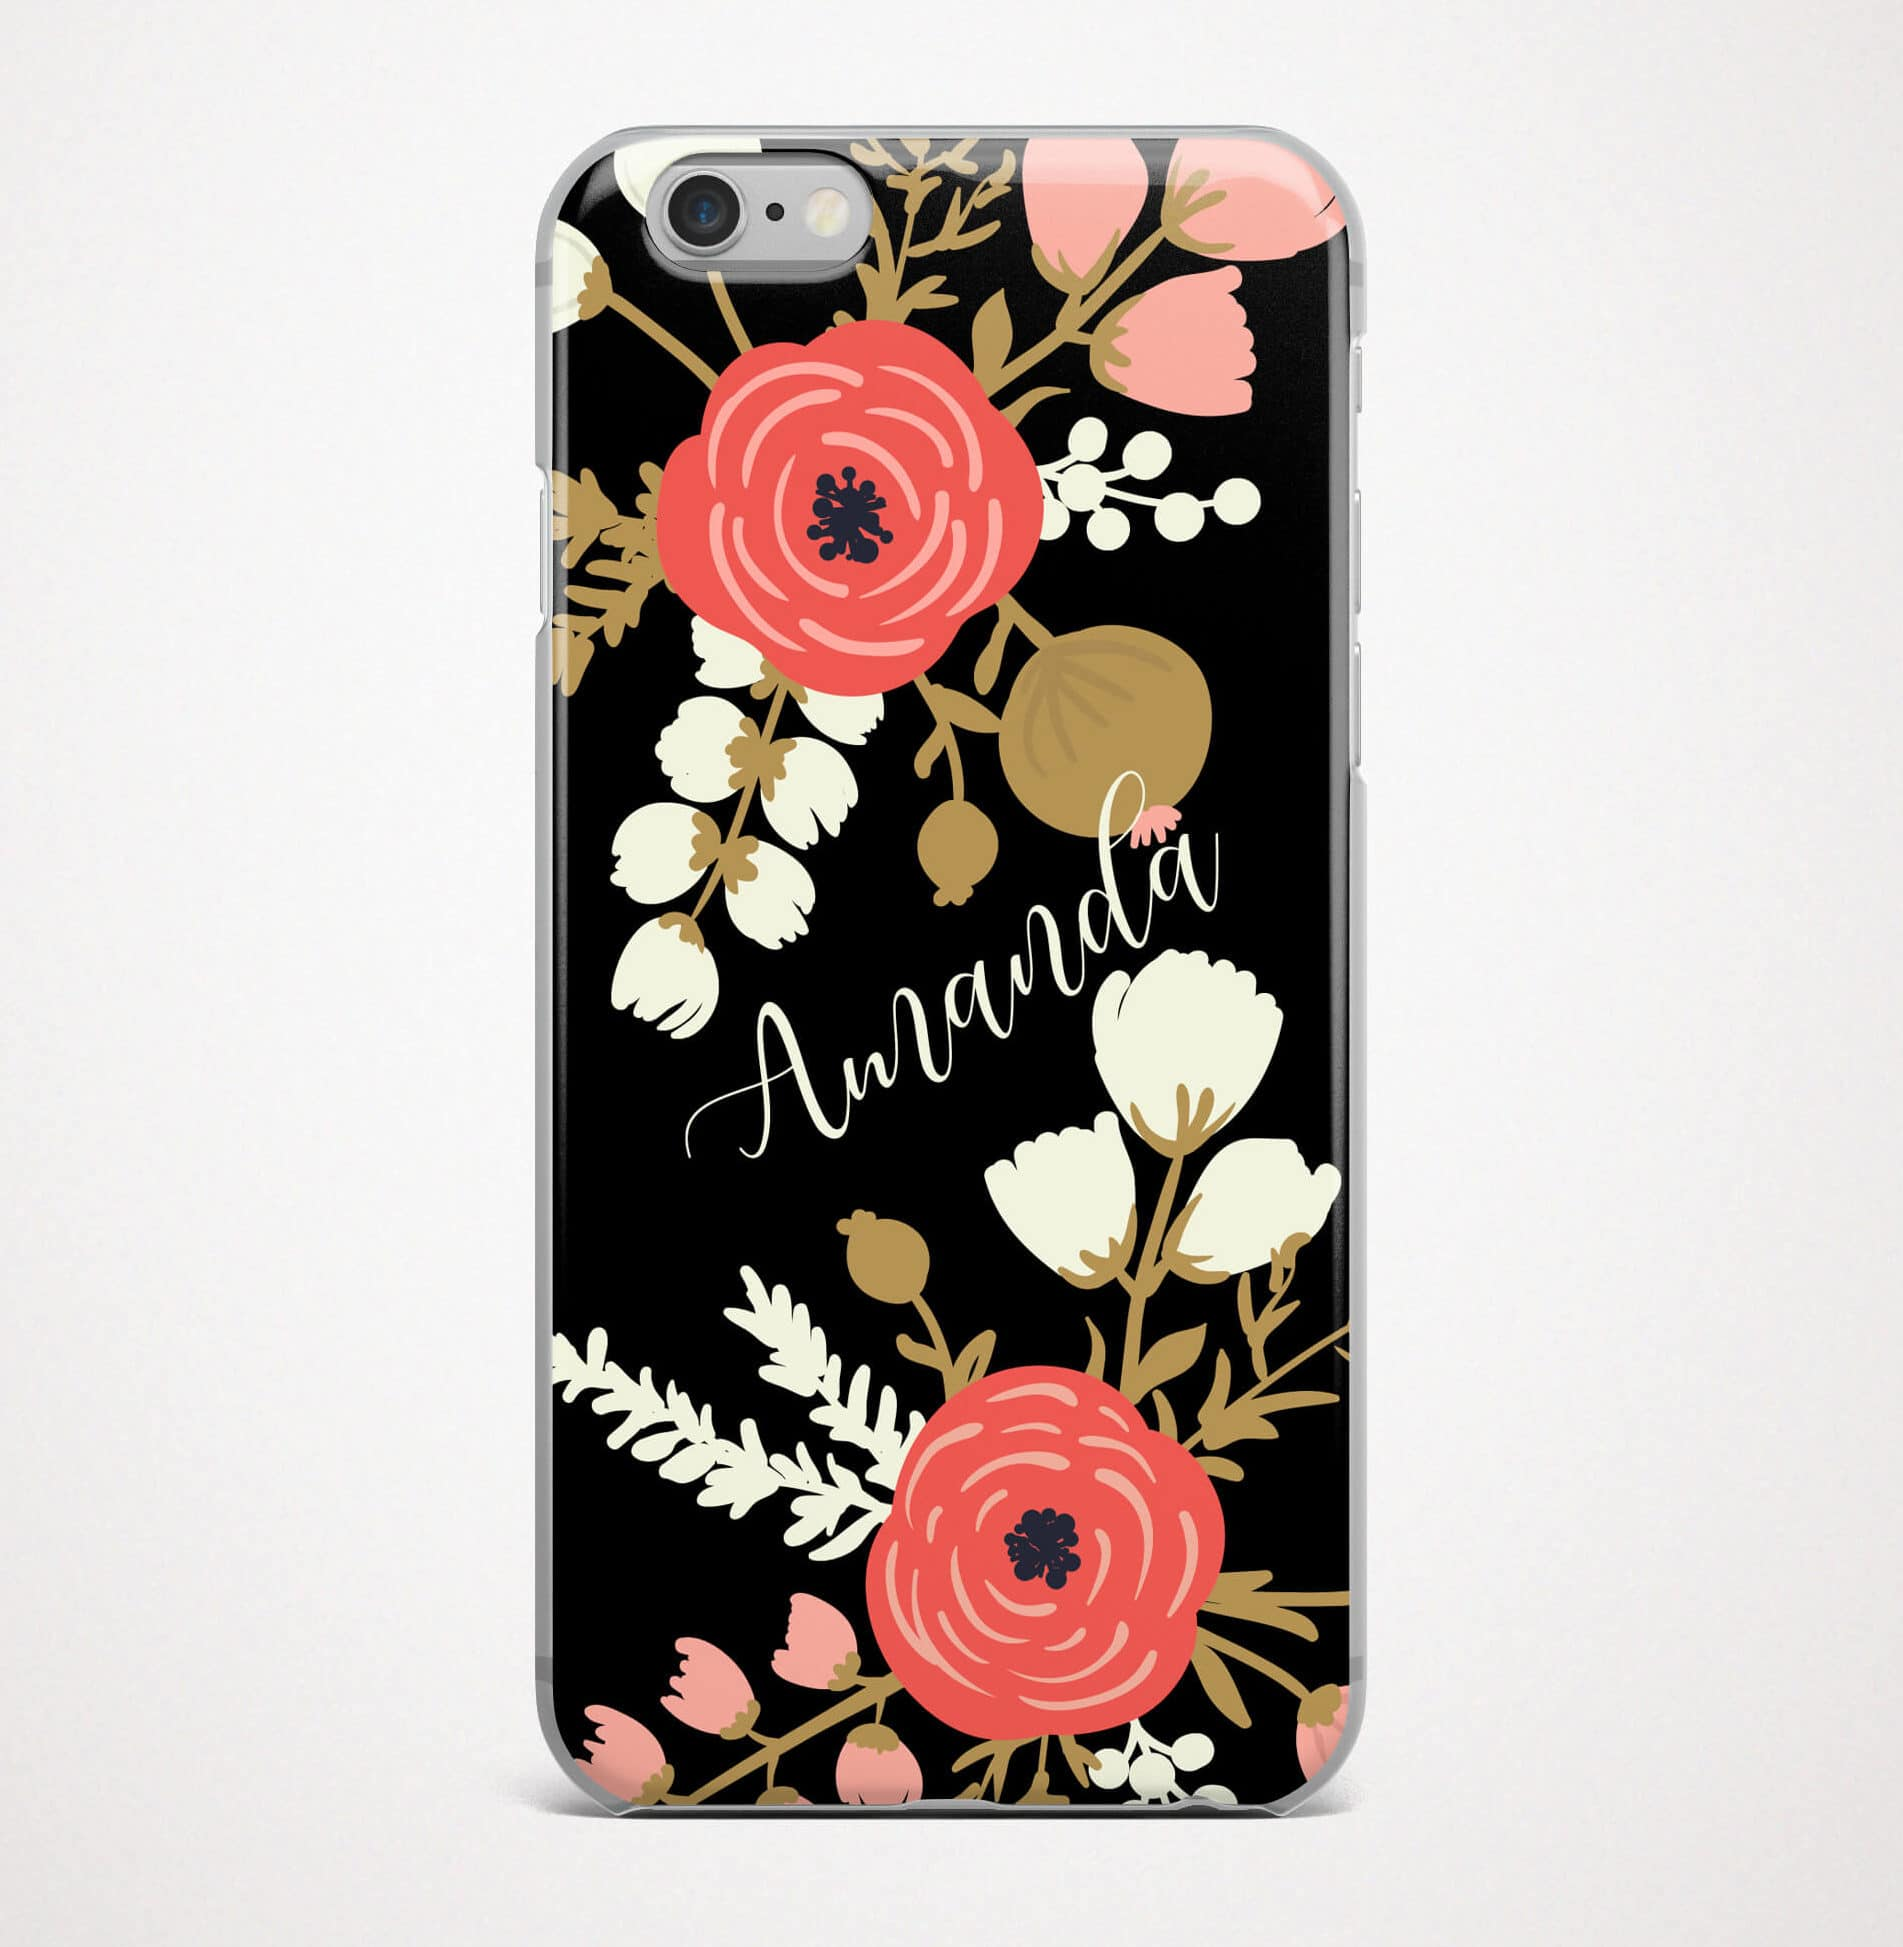 Personalized Phone Accessories Restylegraphic